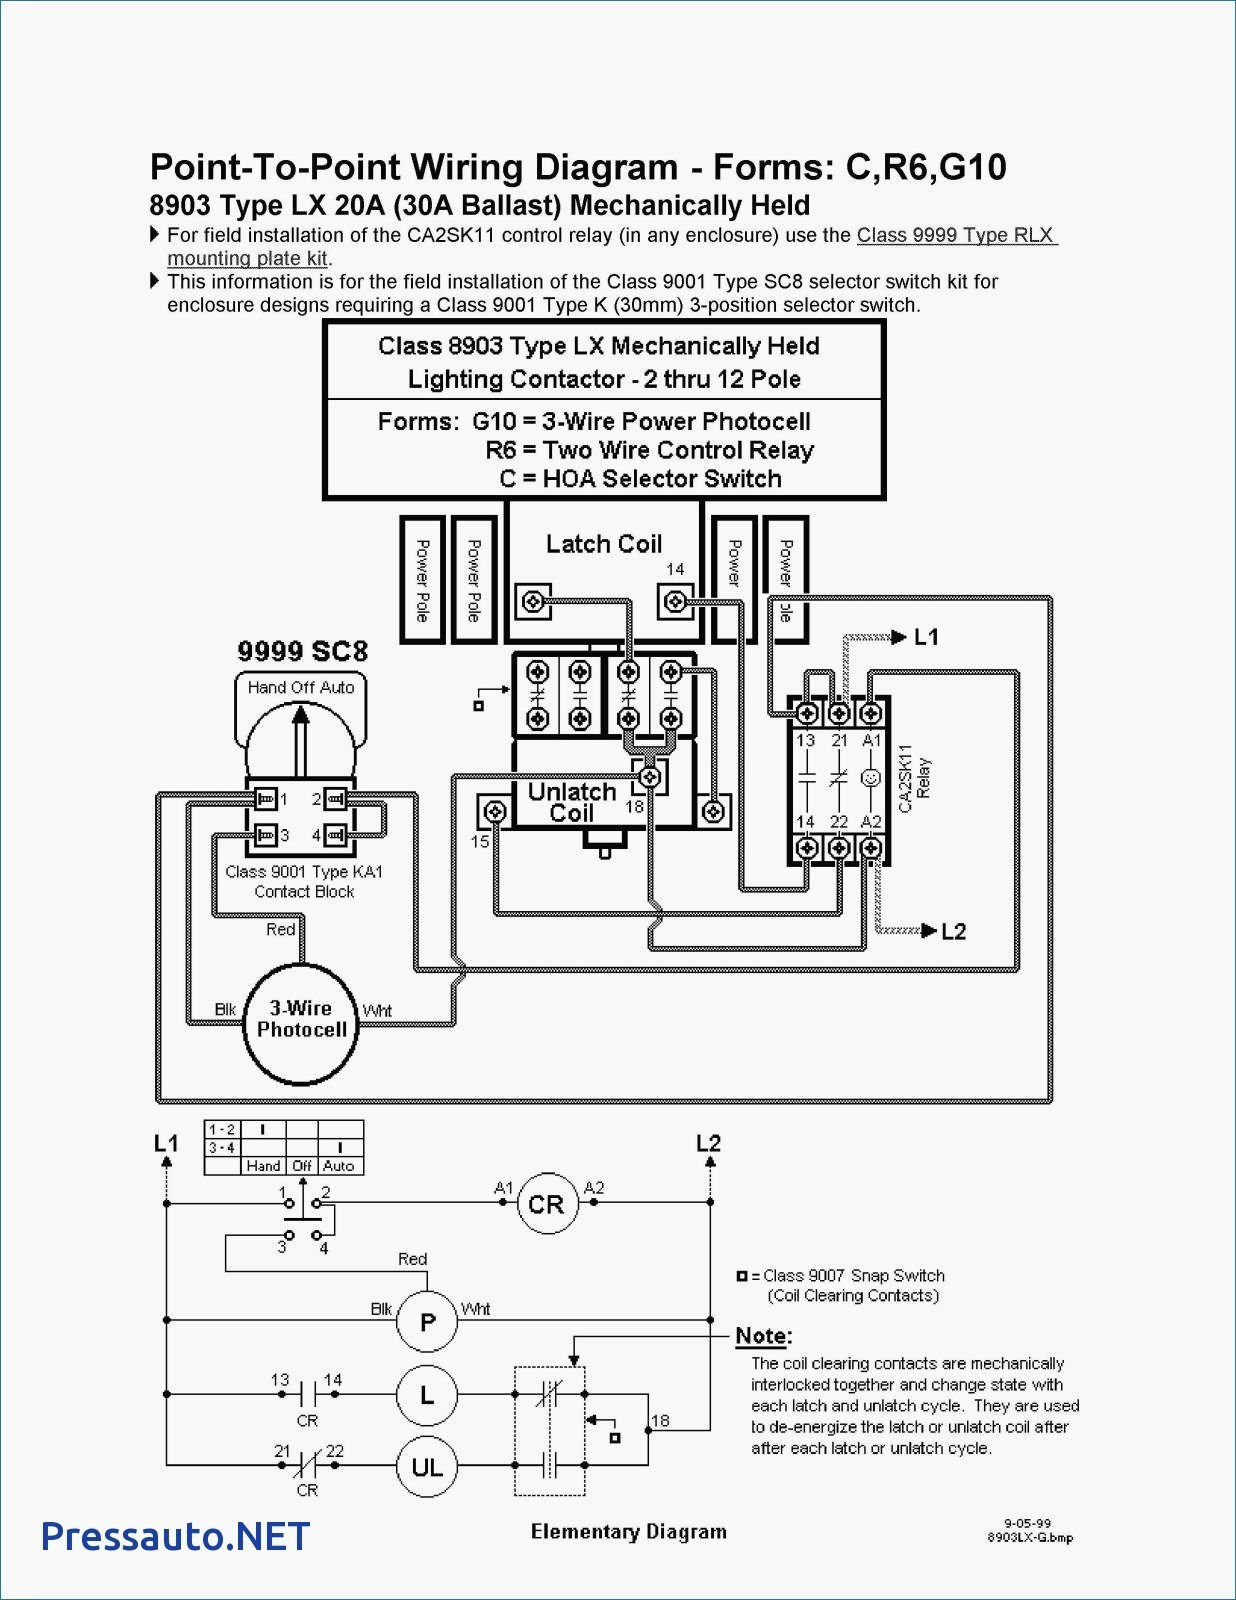 Square D Lighting Contactor Wiring Diagram 8903 - Trusted Wiring - Square D 8903 Lighting Contactor Wiring Diagram